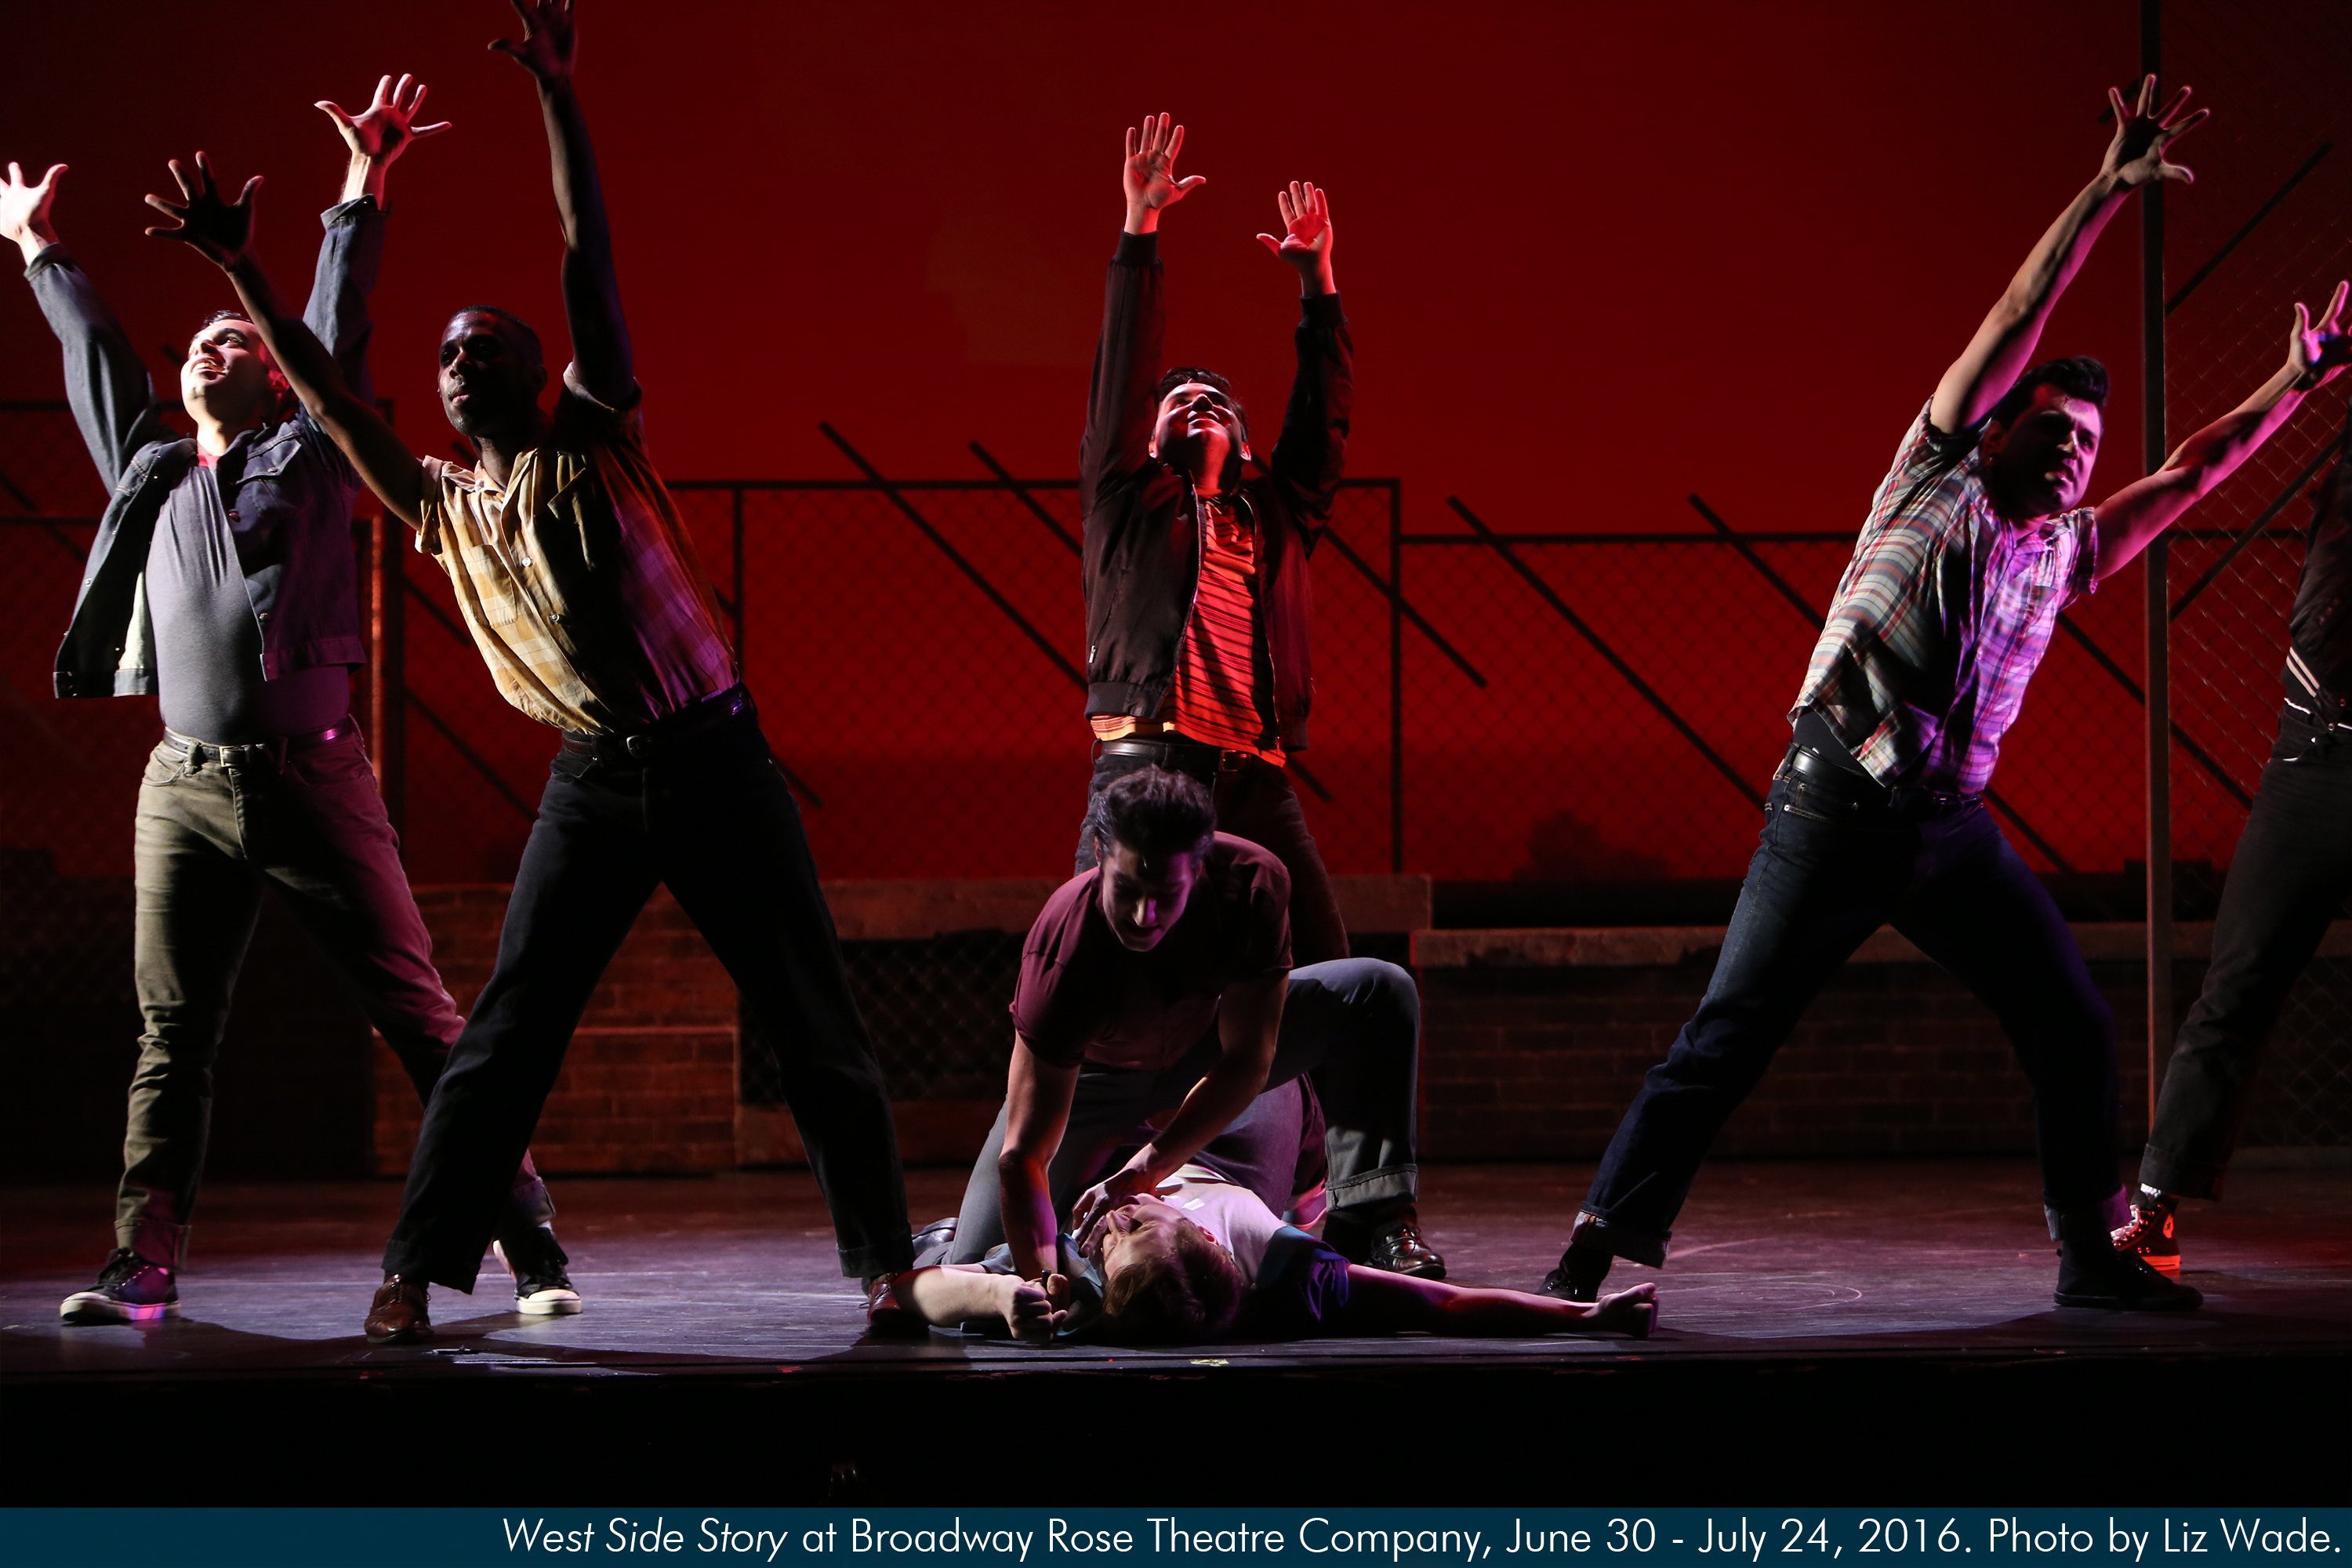 West Side Story at Broadway Rose Theatre Company. Photo by Liz Wade.